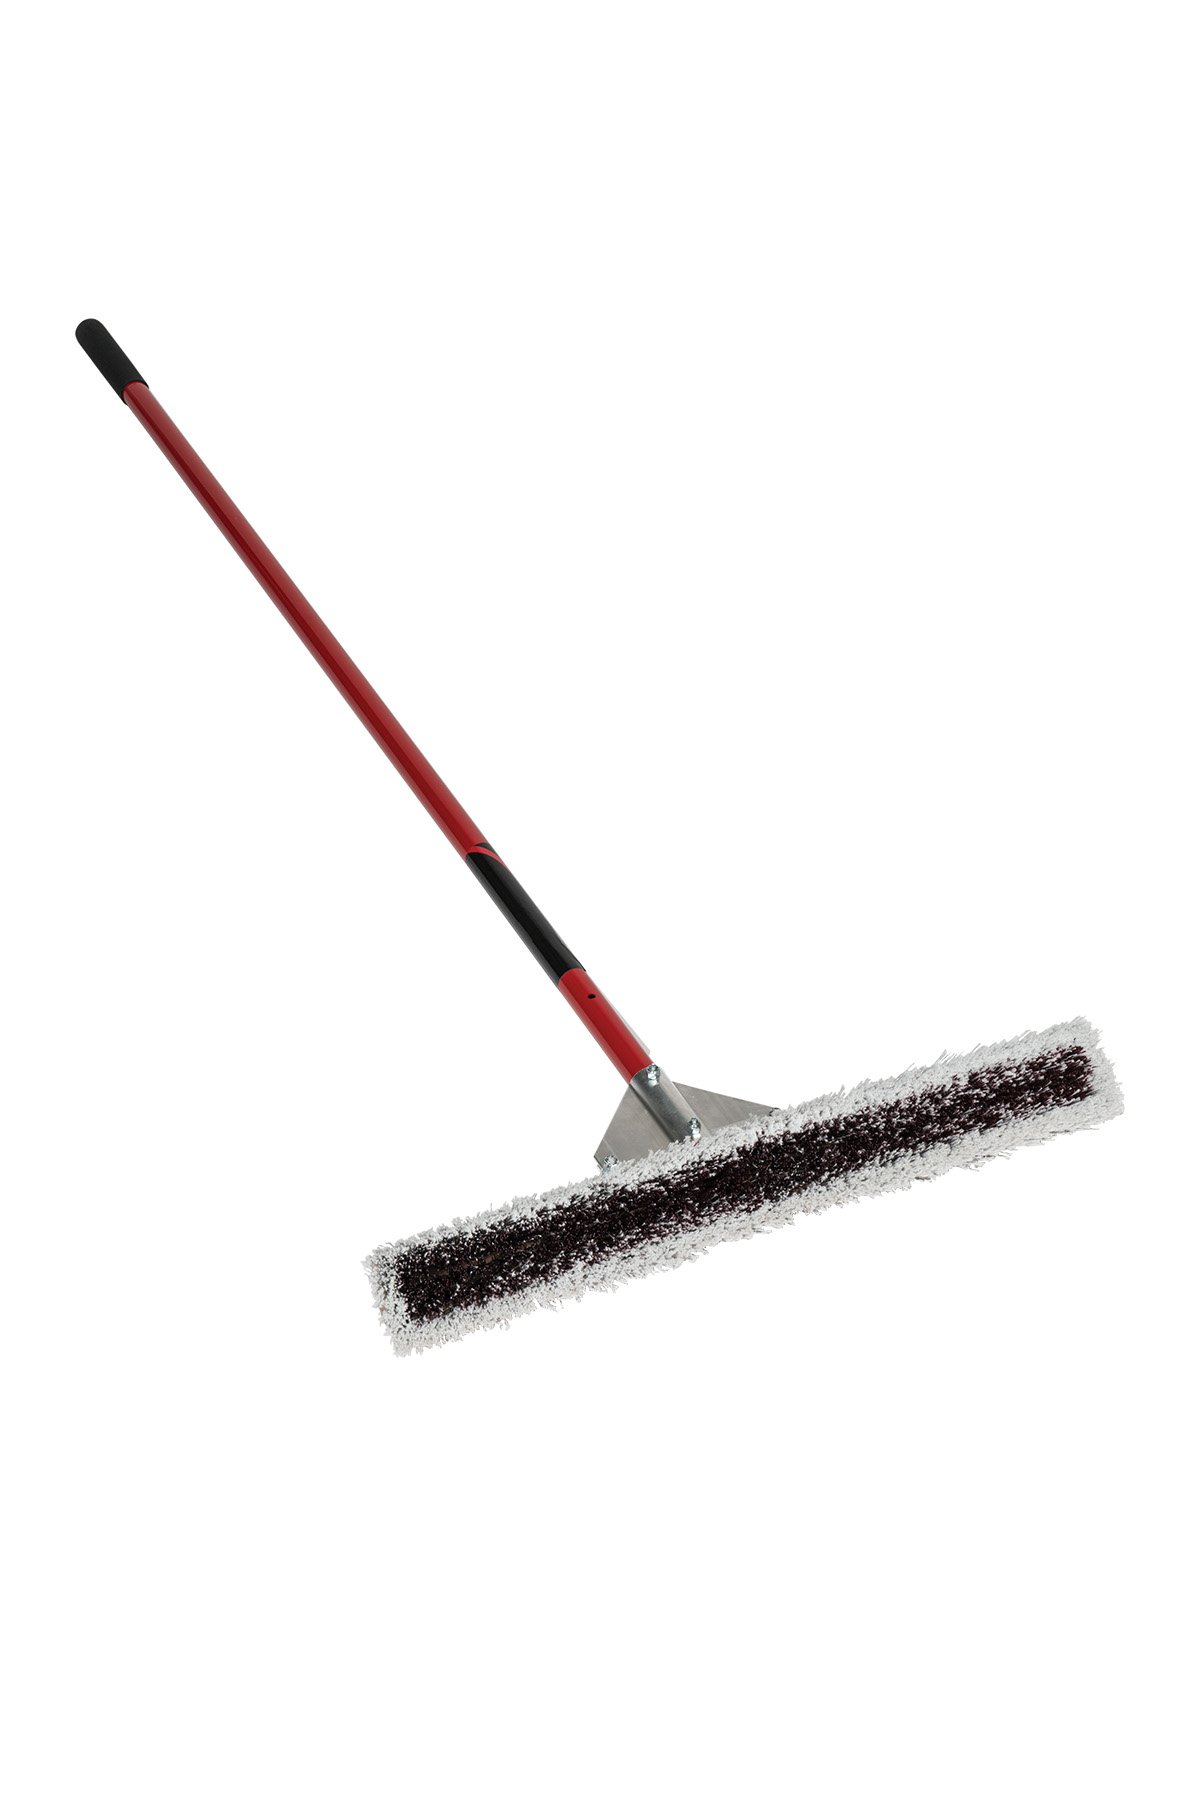 Kenyon 82602 Wonder Broom, Dual Bristles, 60'', 24'' Red Aluminum Handle